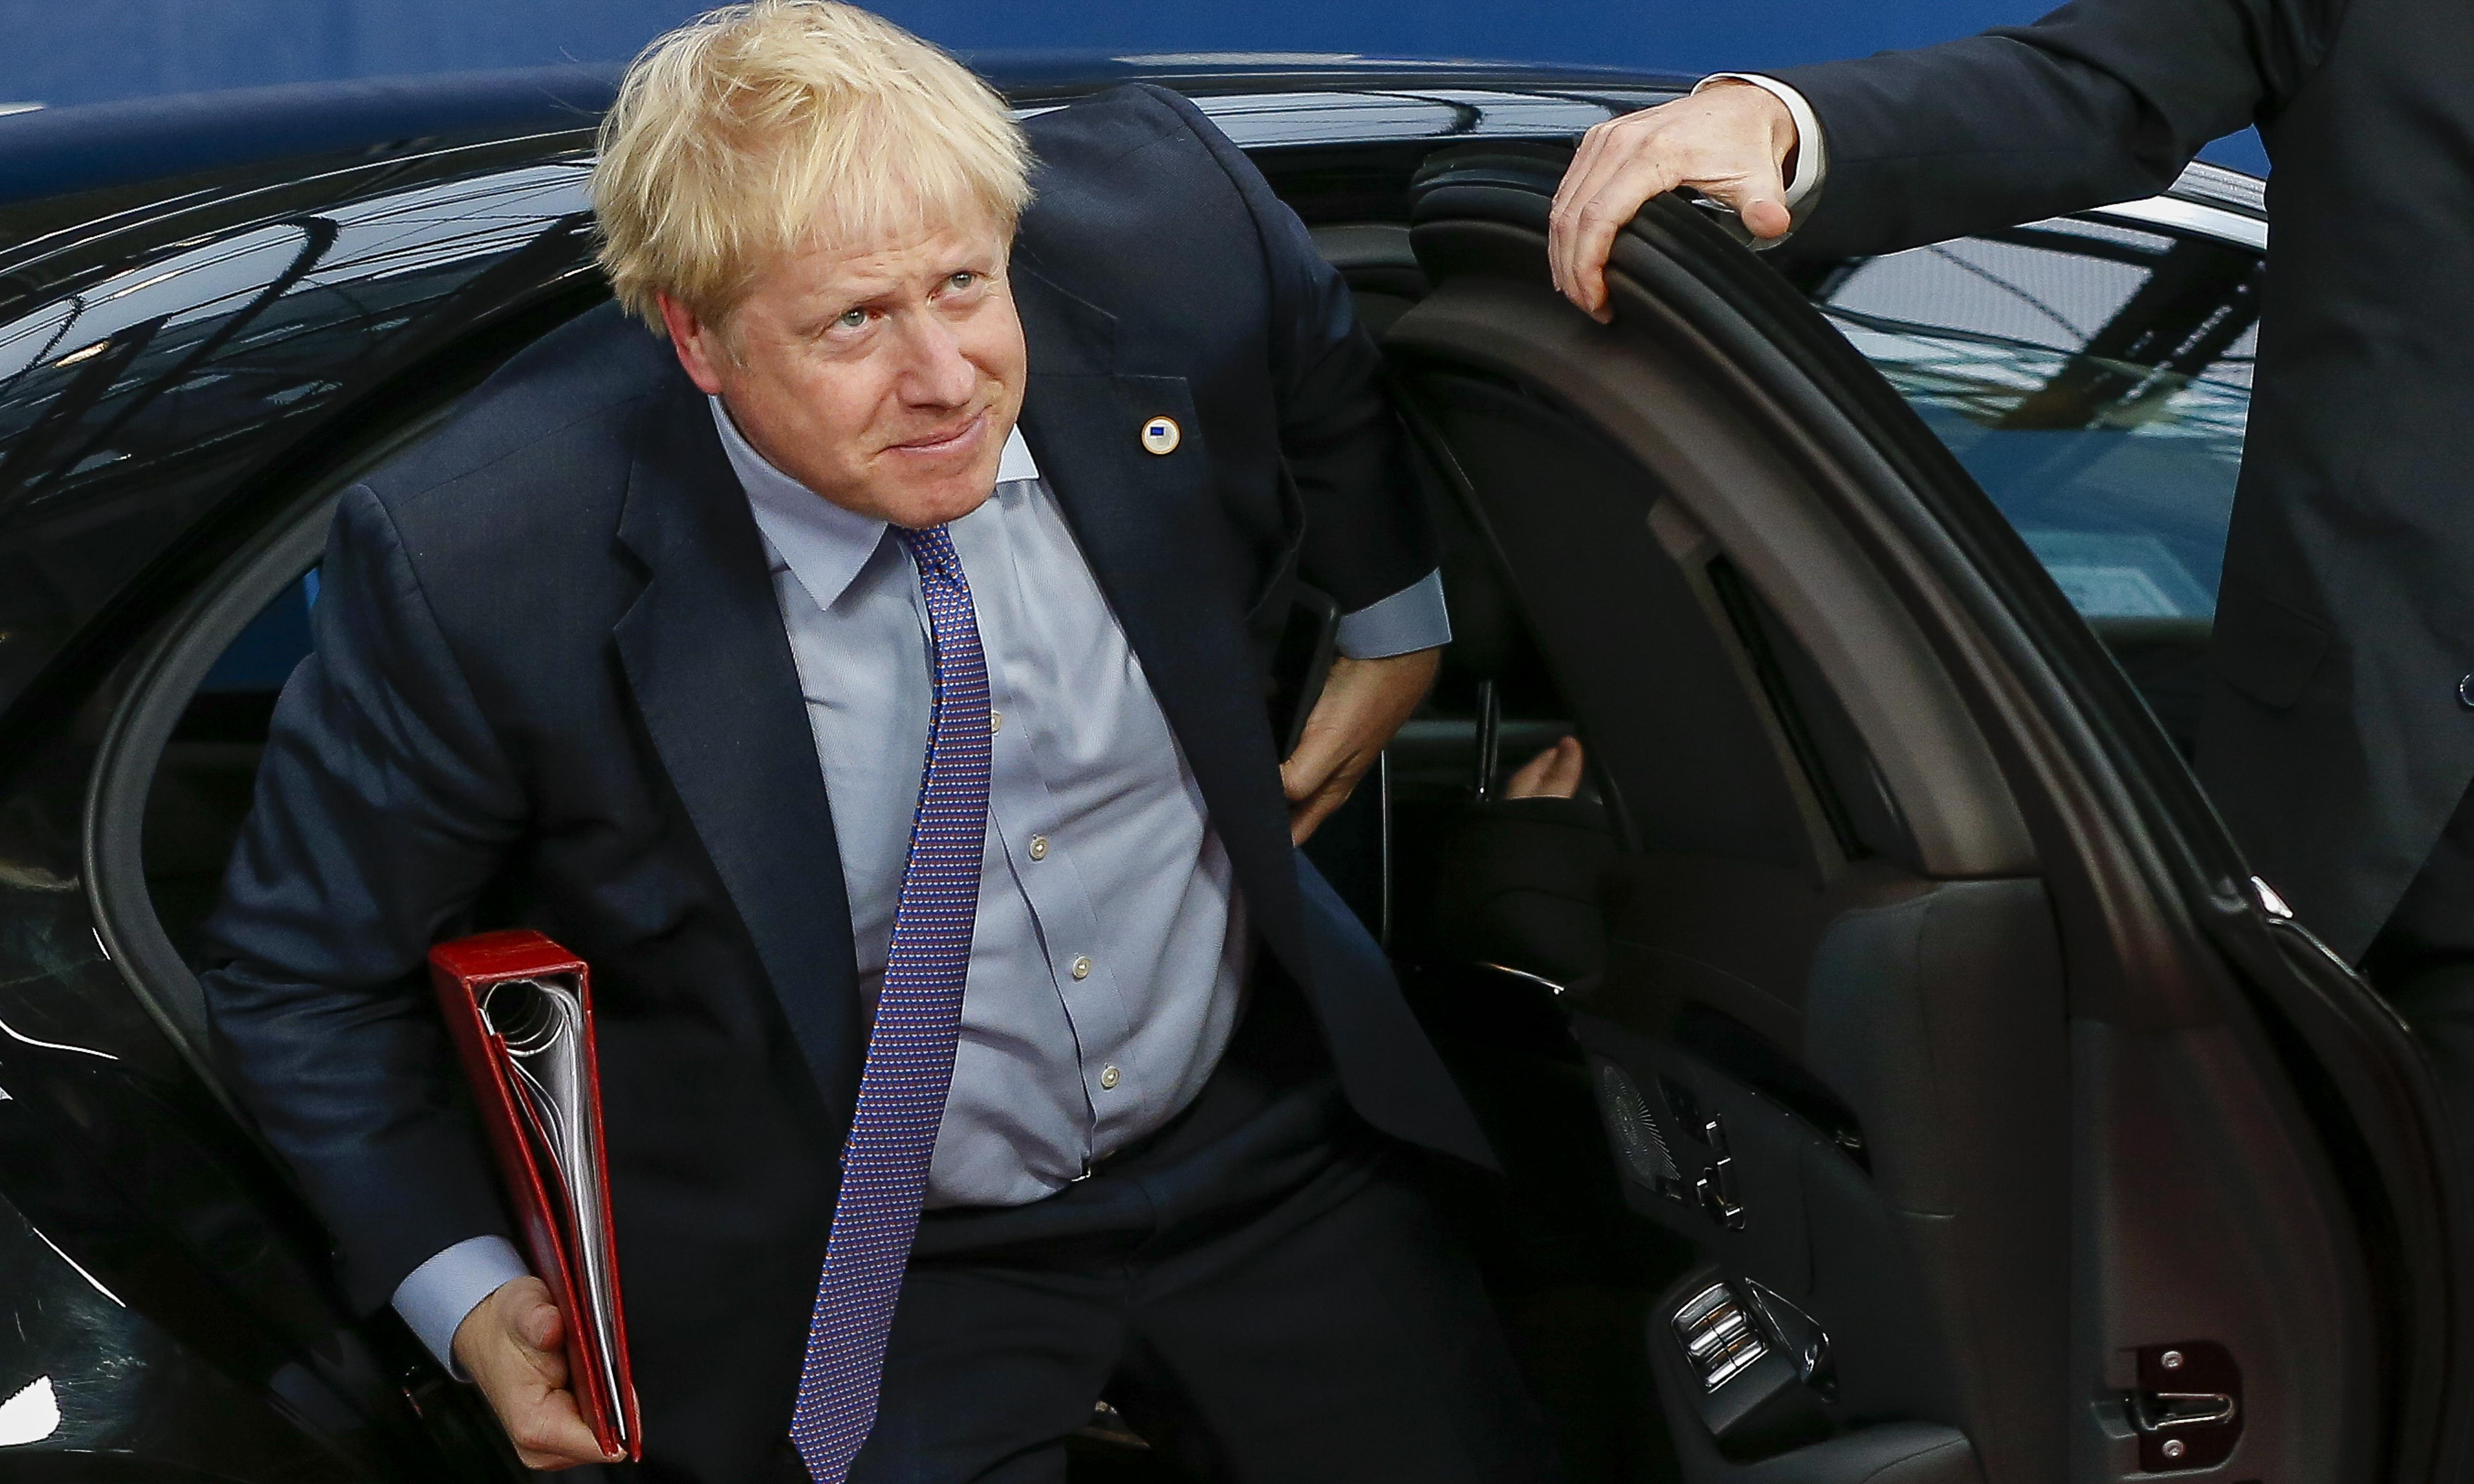 Boris Johnson has a deal. Now MPs must end the agony and vote it through